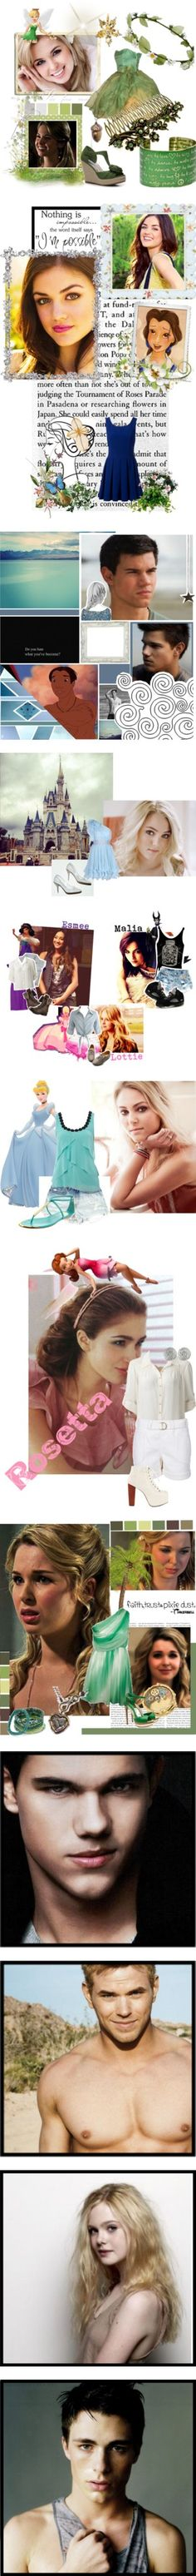 """Disney High Open sets"" by avadakedavra934 ❤ liked on Polyvore"